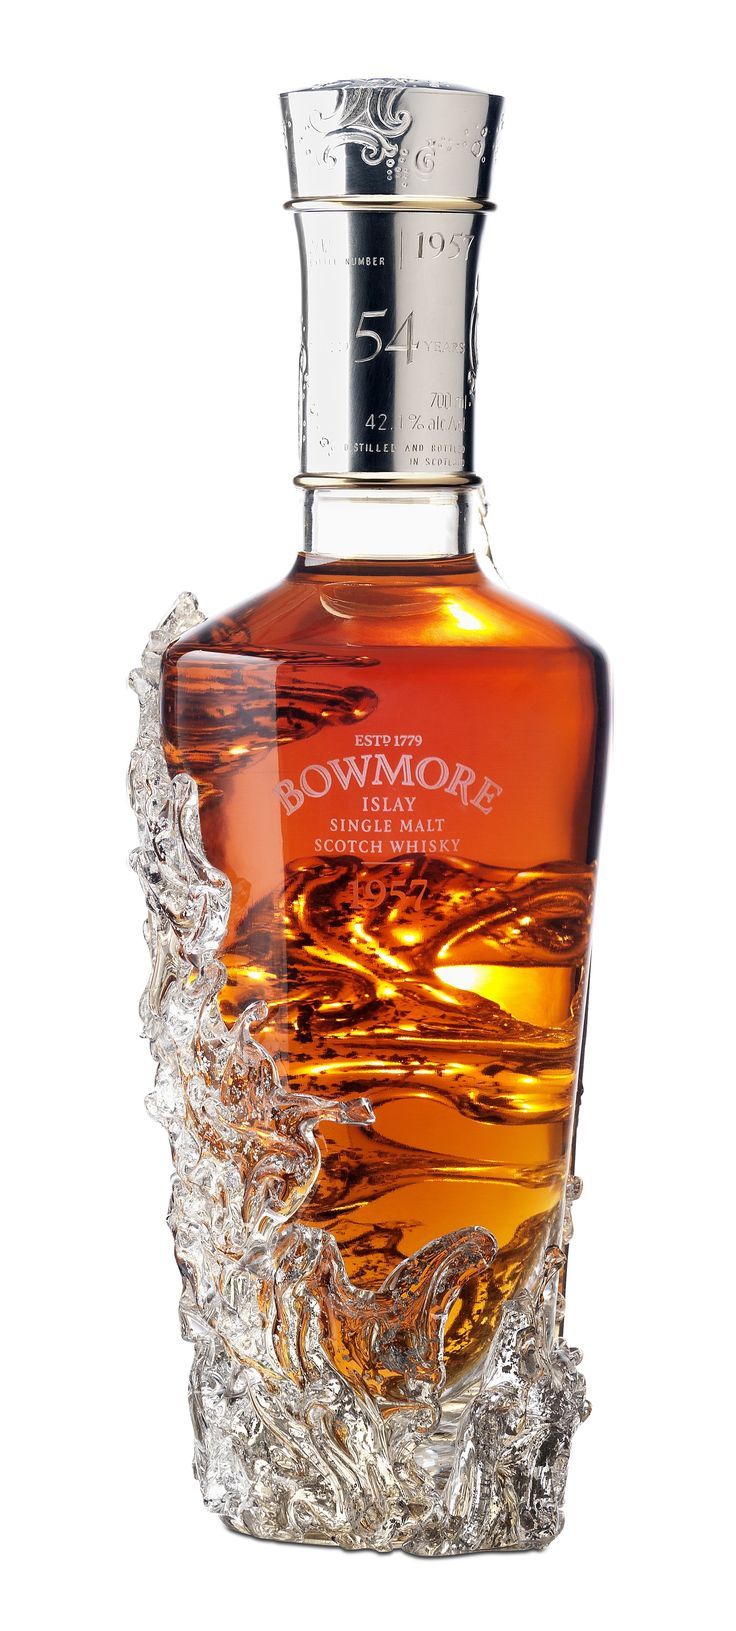 Bowmore  1957 - 54 year old Single Islay Malt Scotch Whisky.the oldest ever Bowmore and the oldest Islay single Malt ever released to the public.   Only 12 bottles in existence in the world 2 went to auction with minimum set price starting at US$155,000 the highest ever set.  All proceeds of the auctions will be donated to five Scottish charities.  Two went to Bowmore archives and 8 to the public but you have to go to the Bowmore Distillery in person to purchase a bottle.